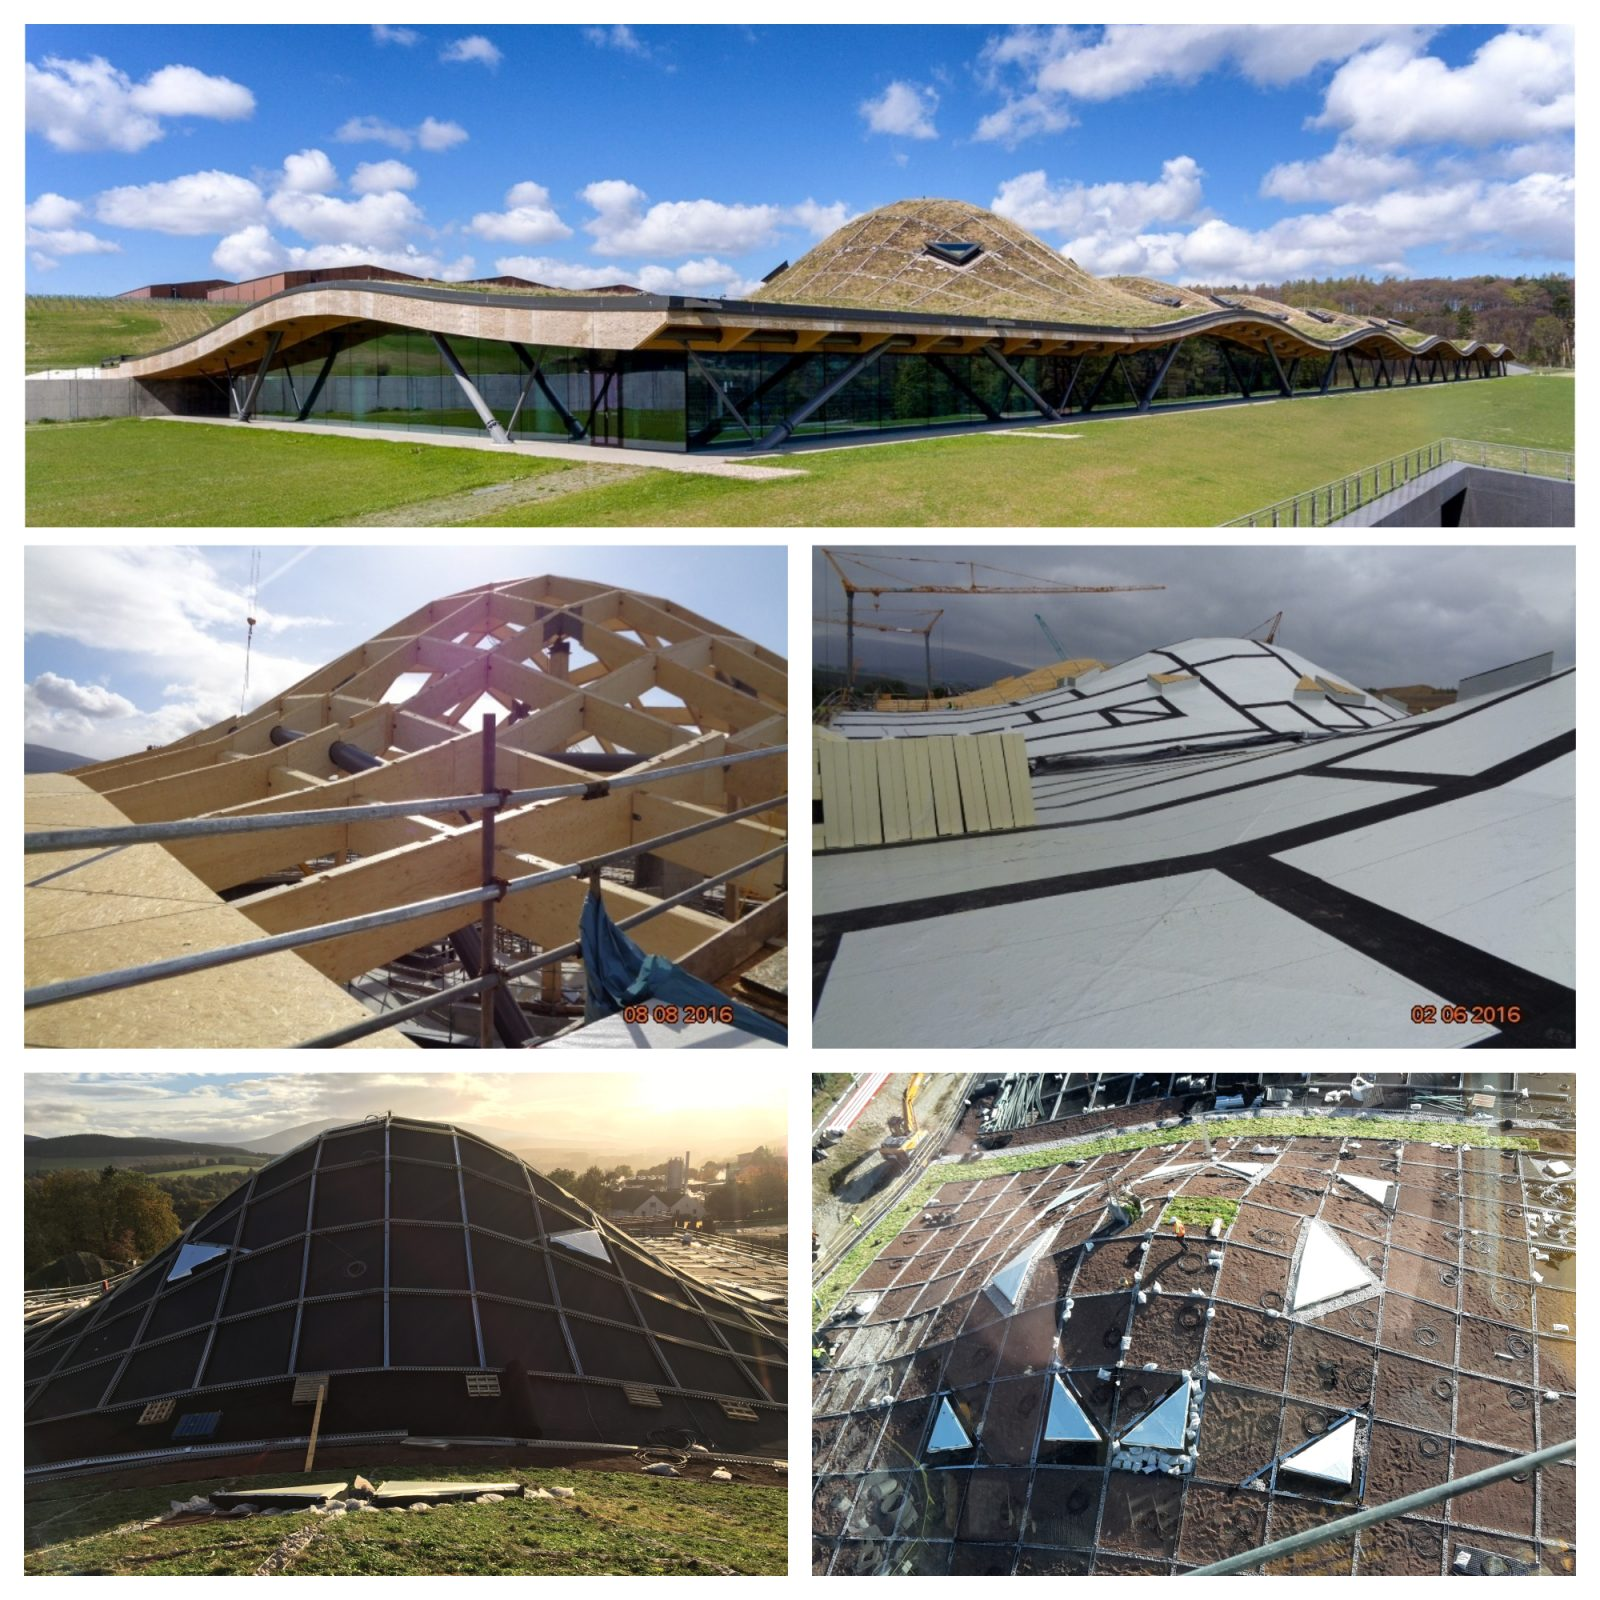 Epdm Rol Dram Roll For The World Class Roof The New Macallan Distillery